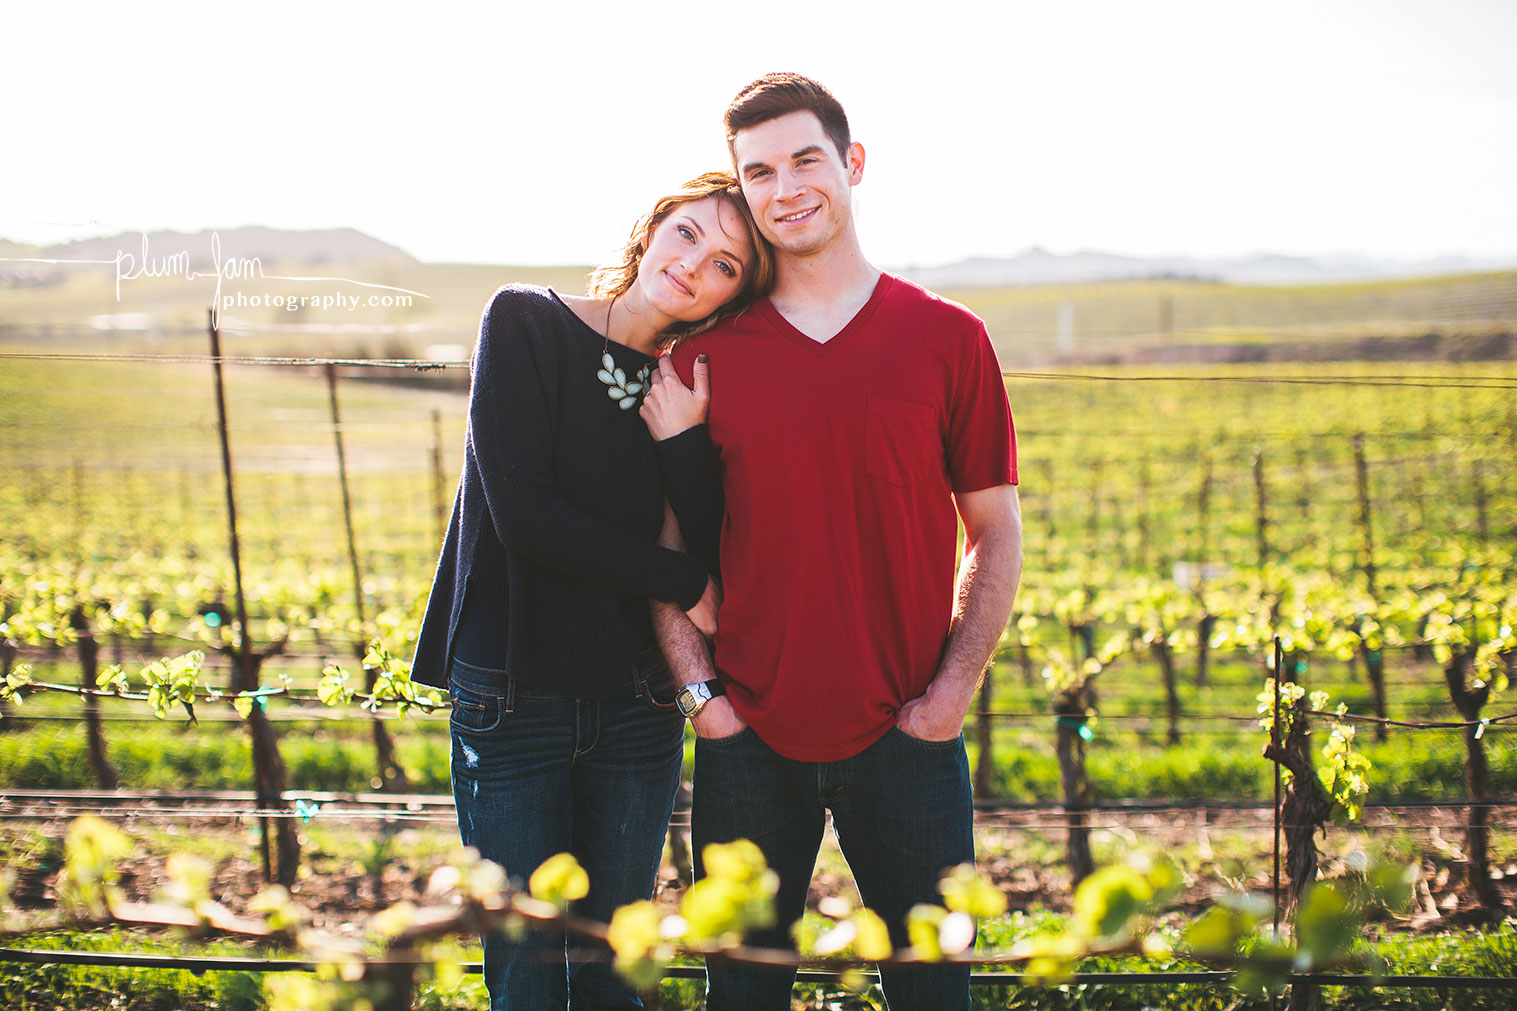 RebeccaMike-Engagement-vineyard-shellbeach-california-plumjamphotography-04